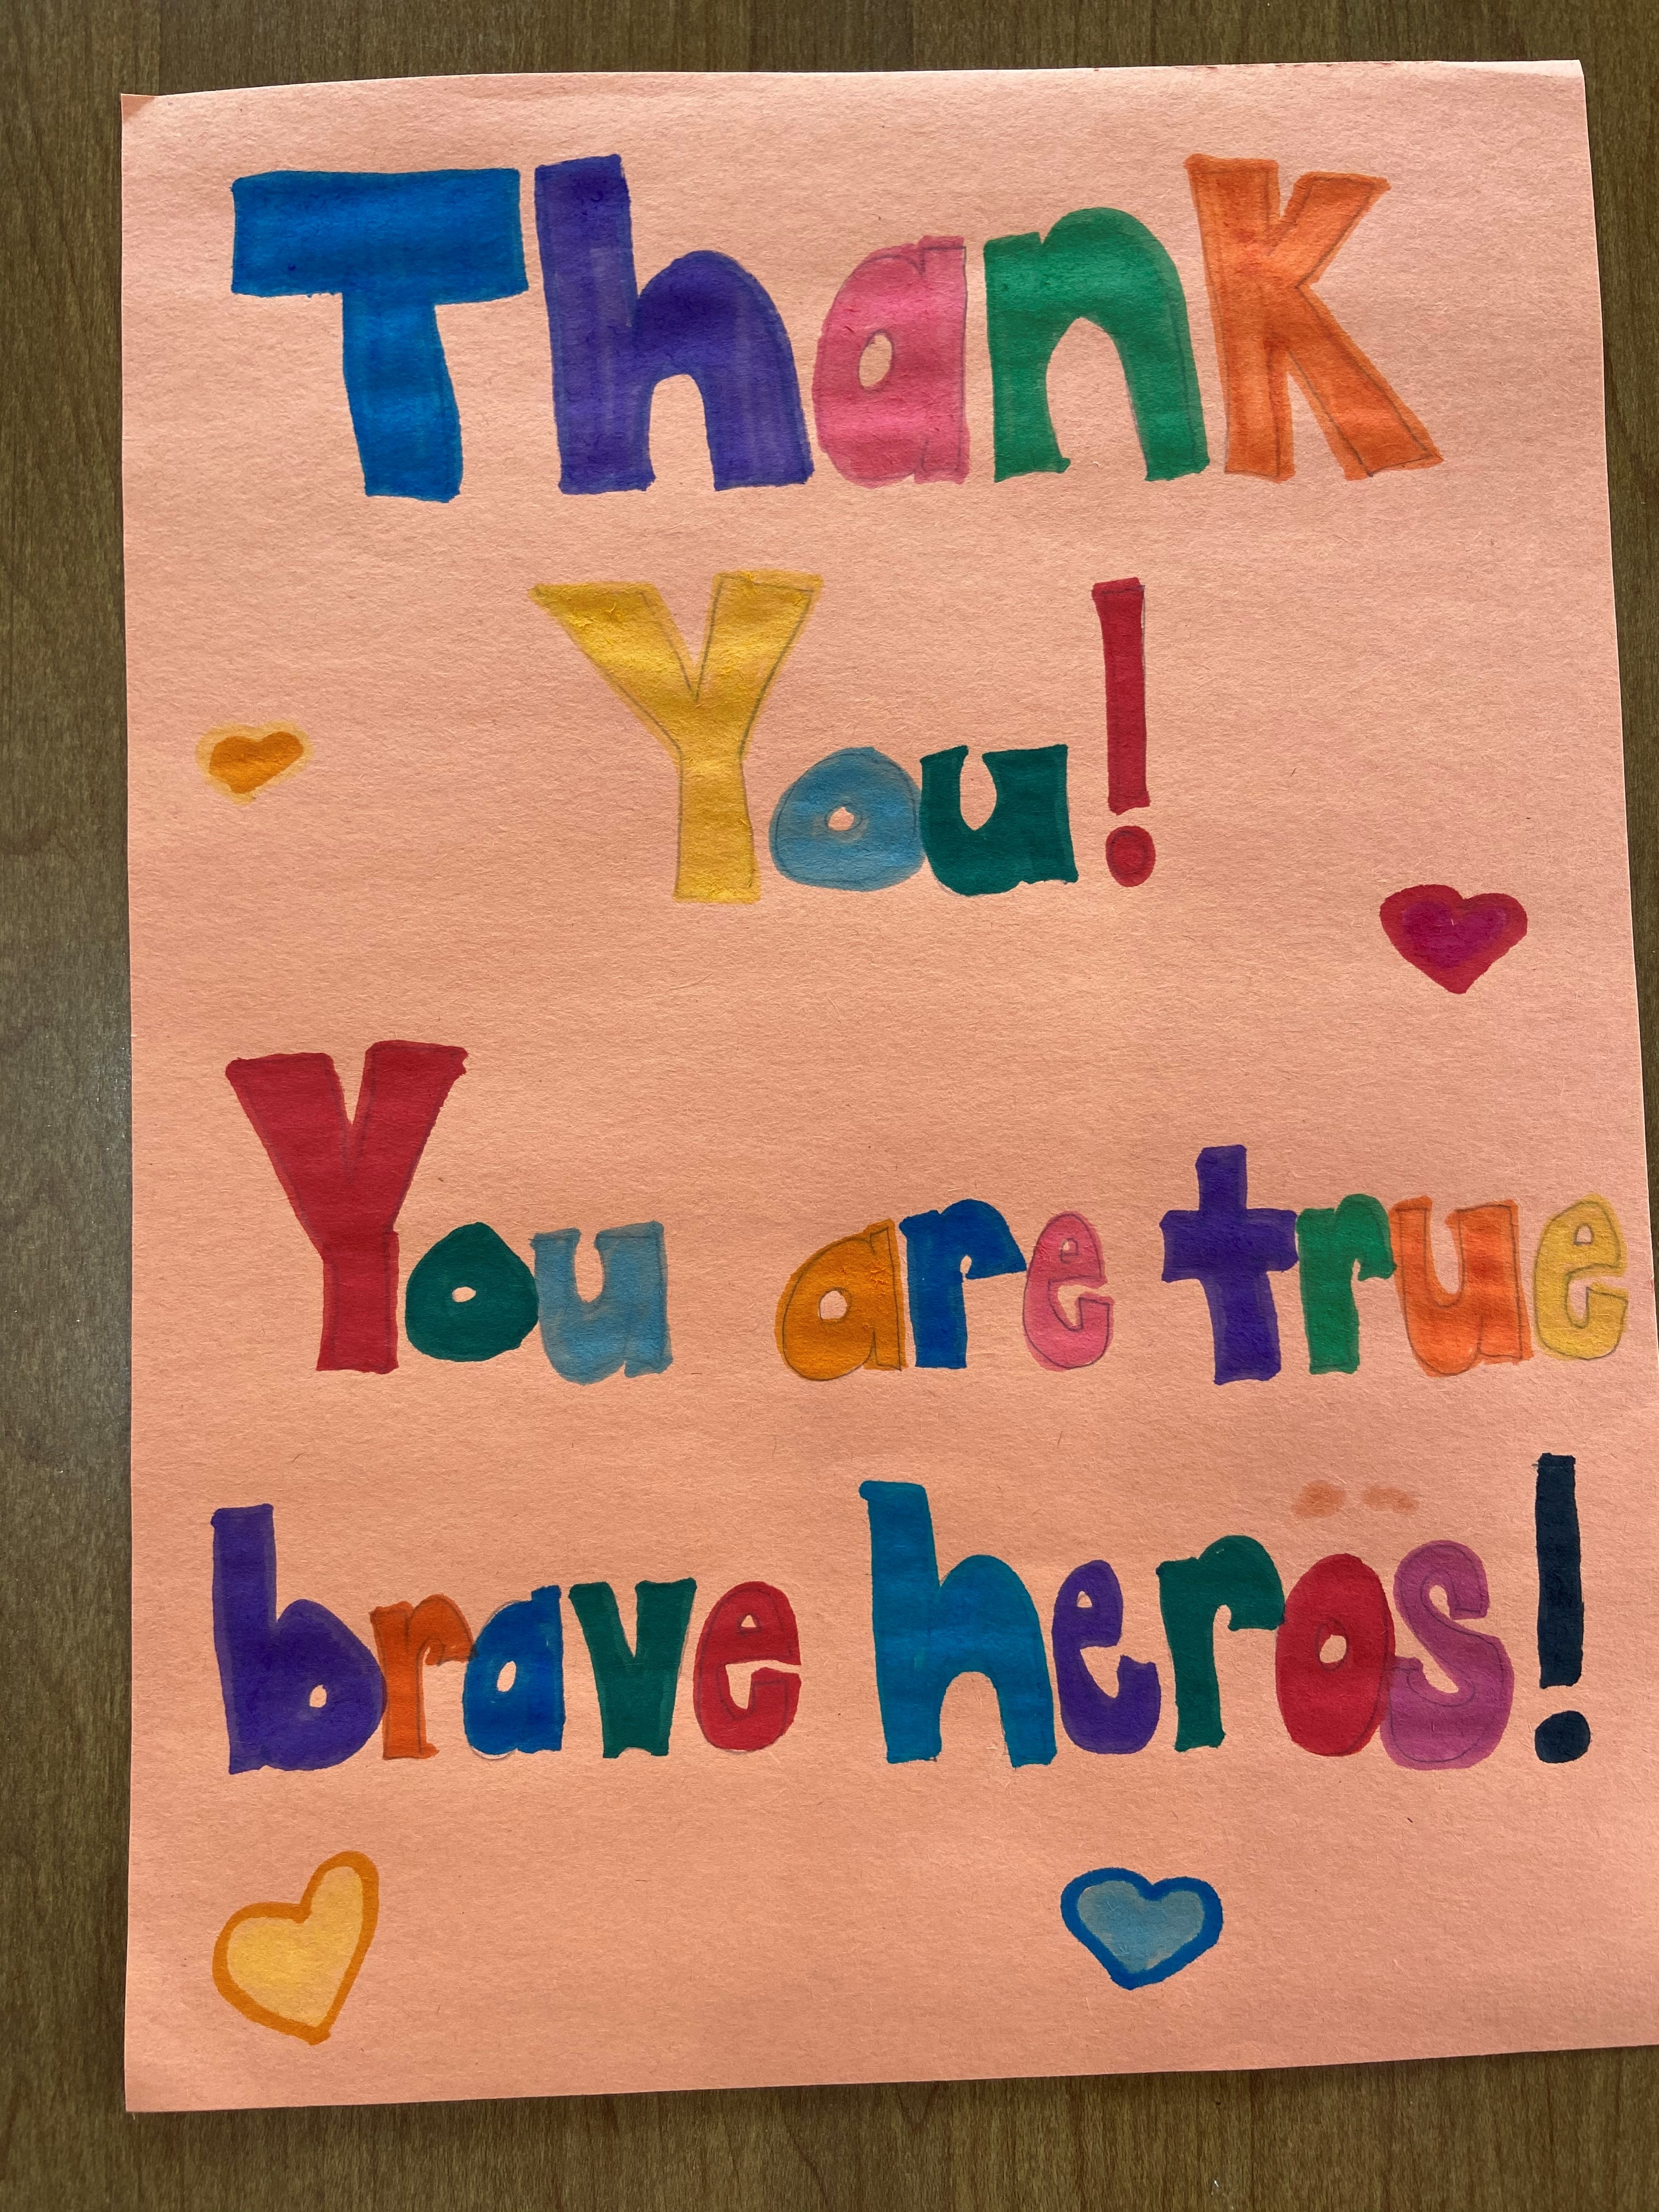 Thank you! You are true brave heroes!